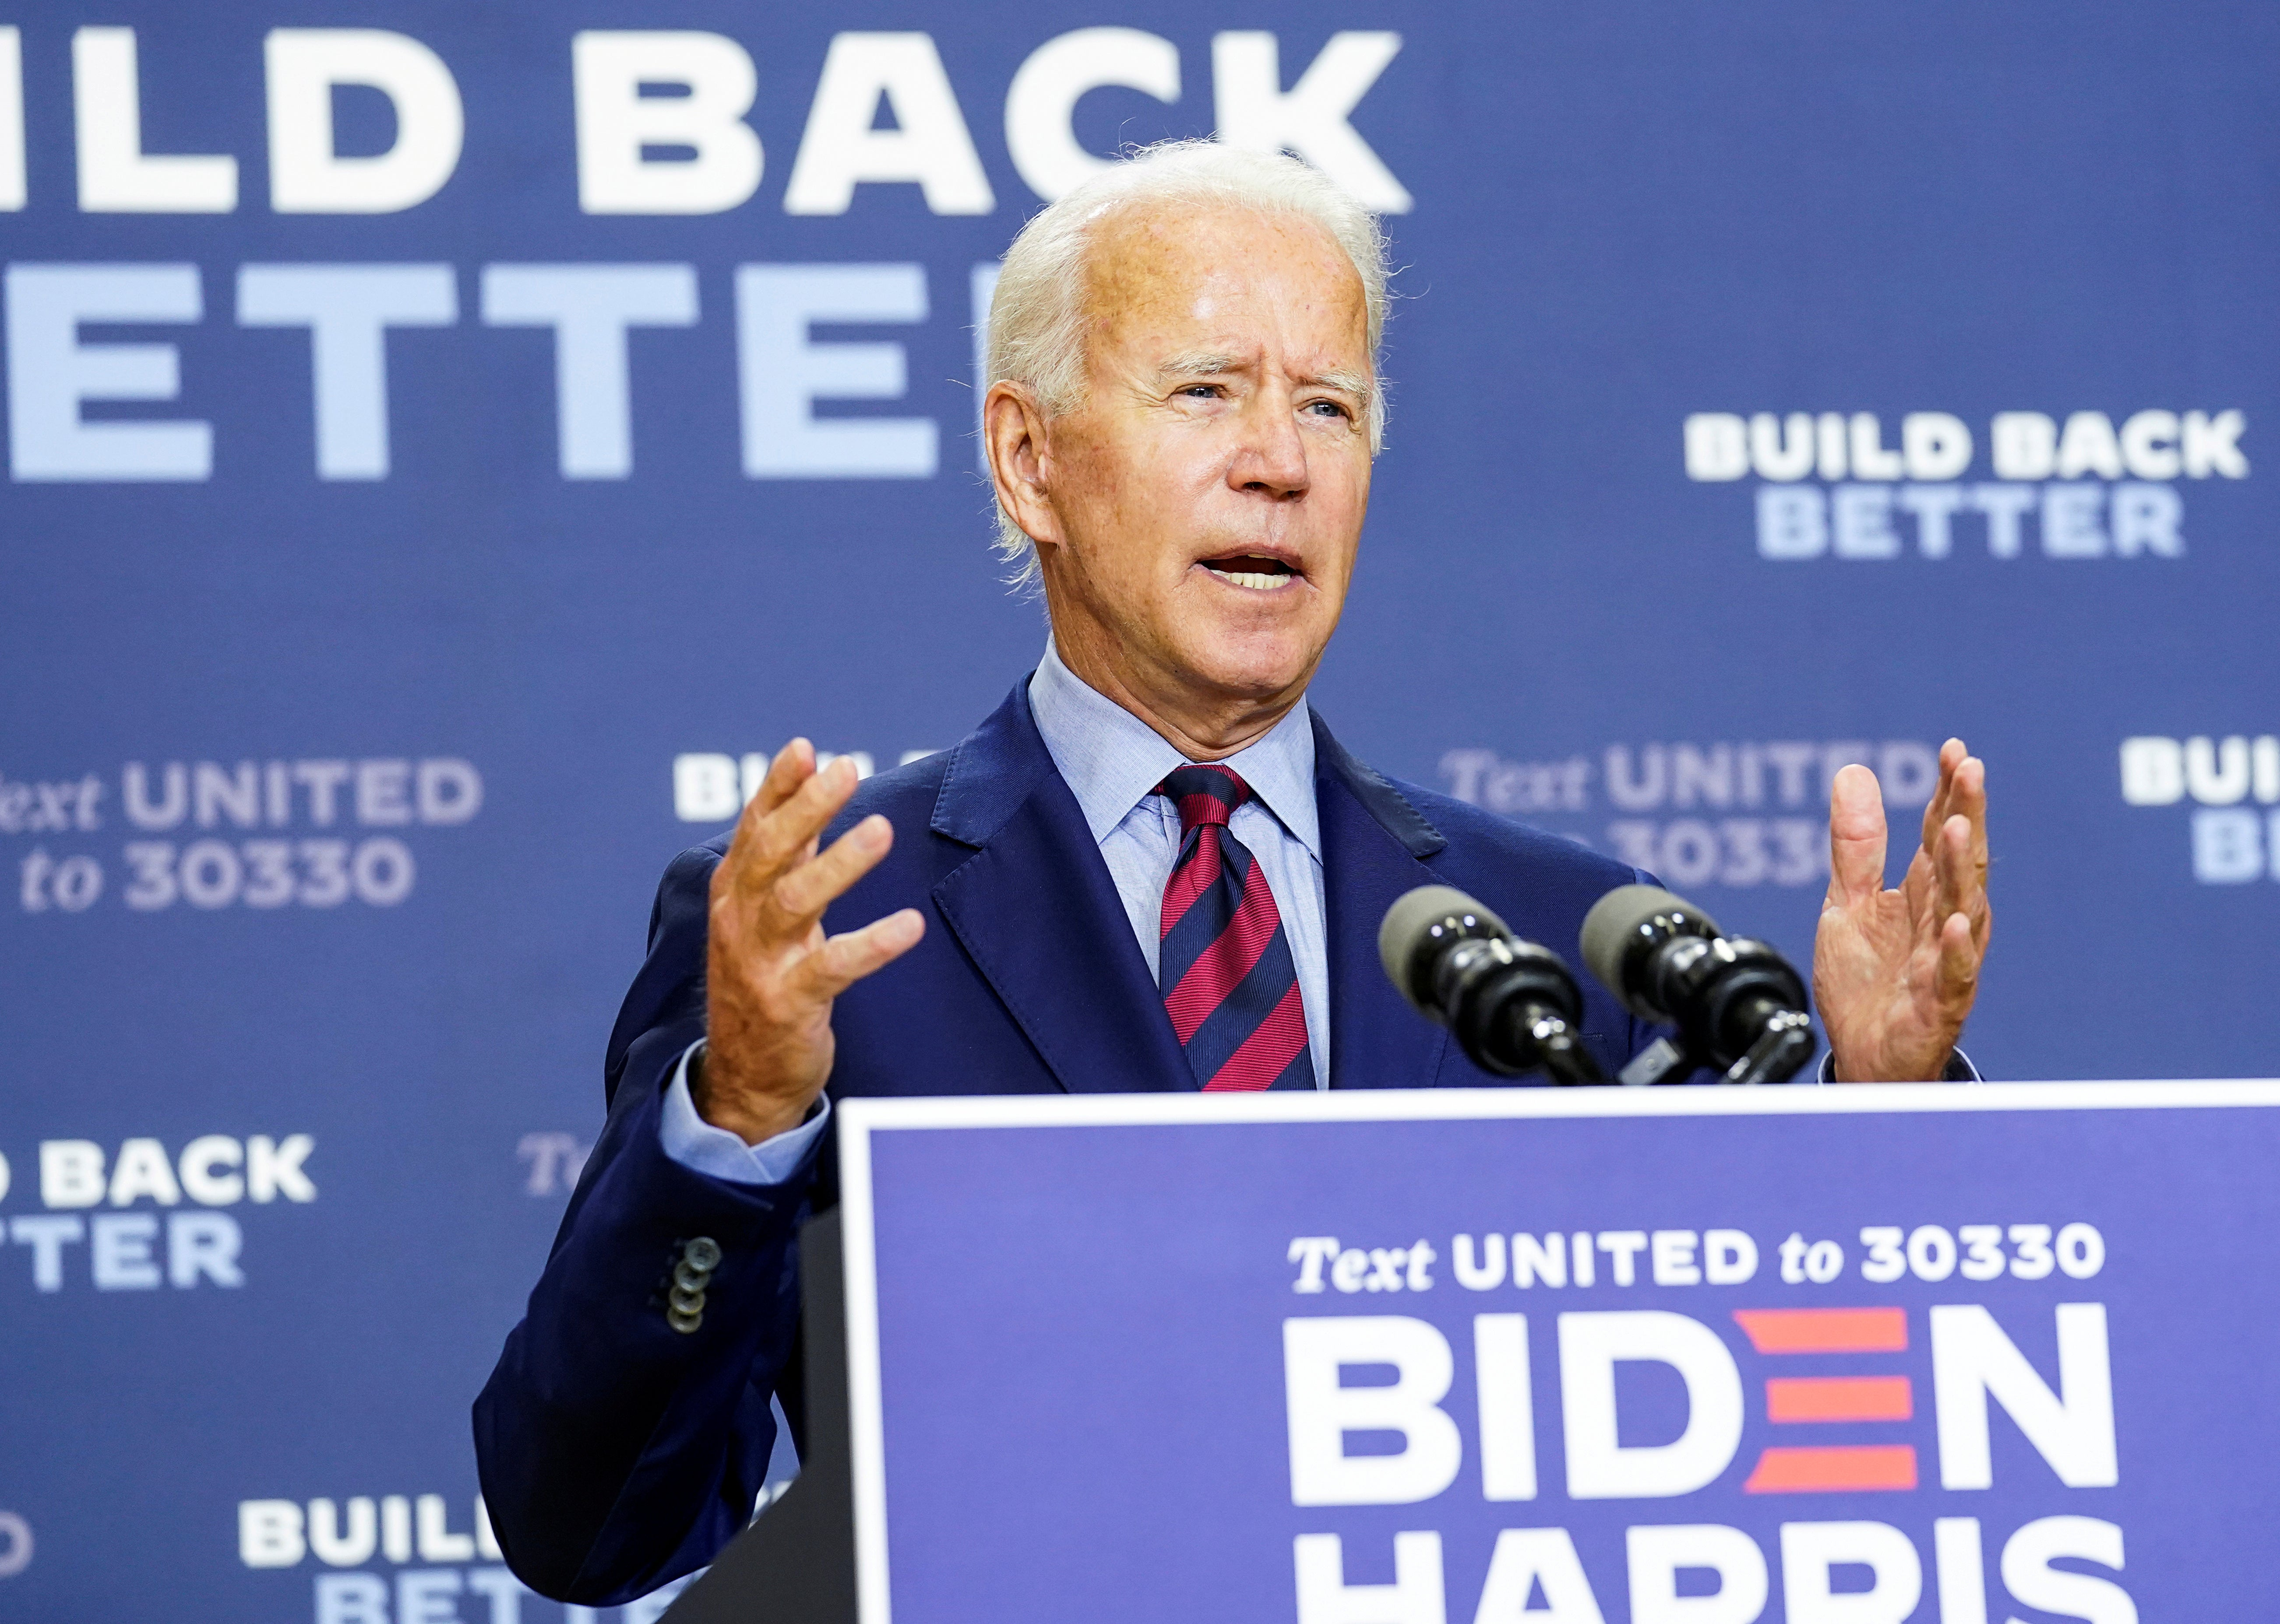 Biden warns 'outrageous' Trump voting comments could cause violence - independent